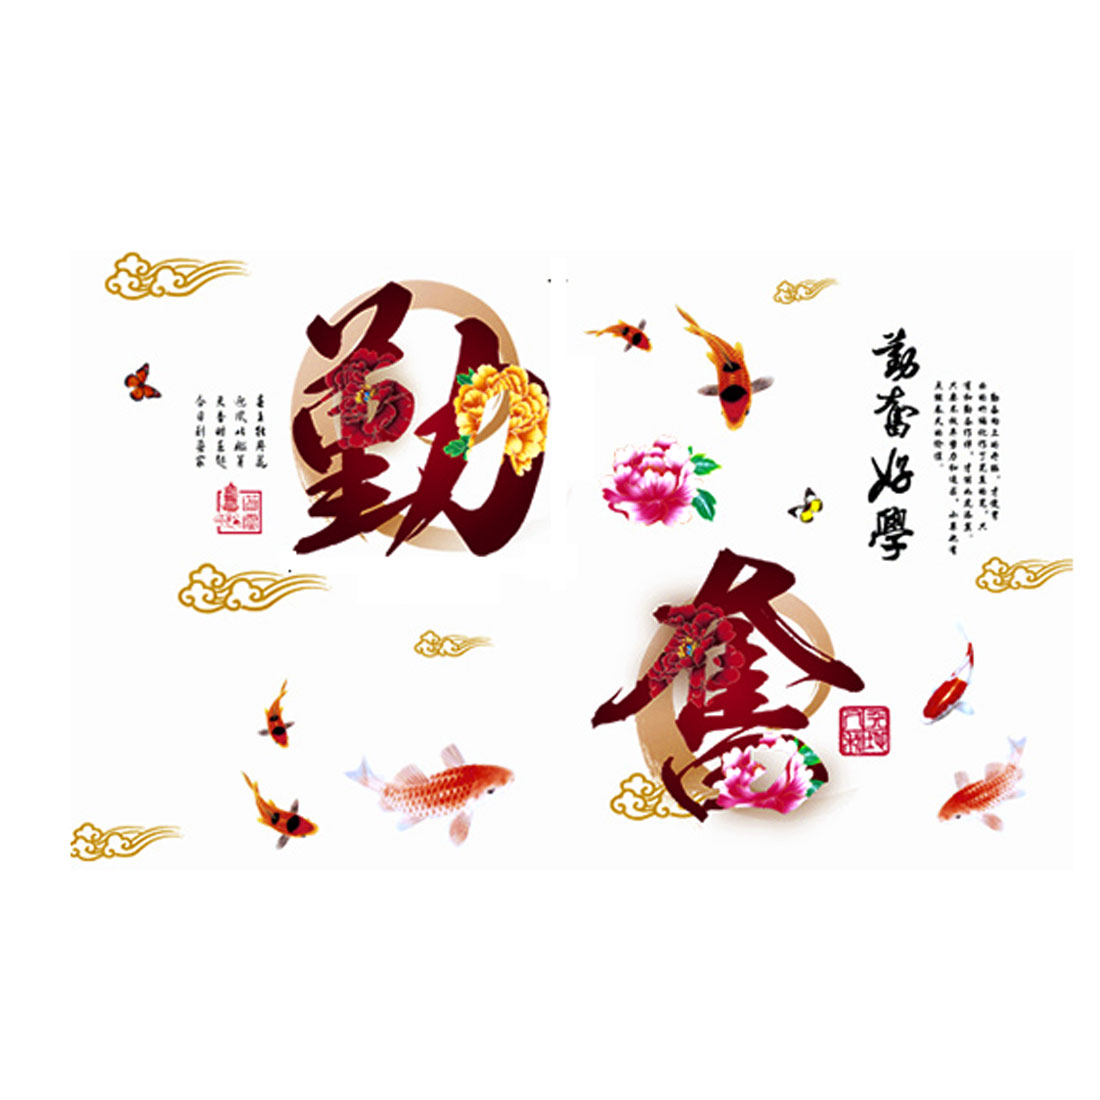 Chinese Proverb Pattern Removable Wall Sticker Decal Wallpaper Decor